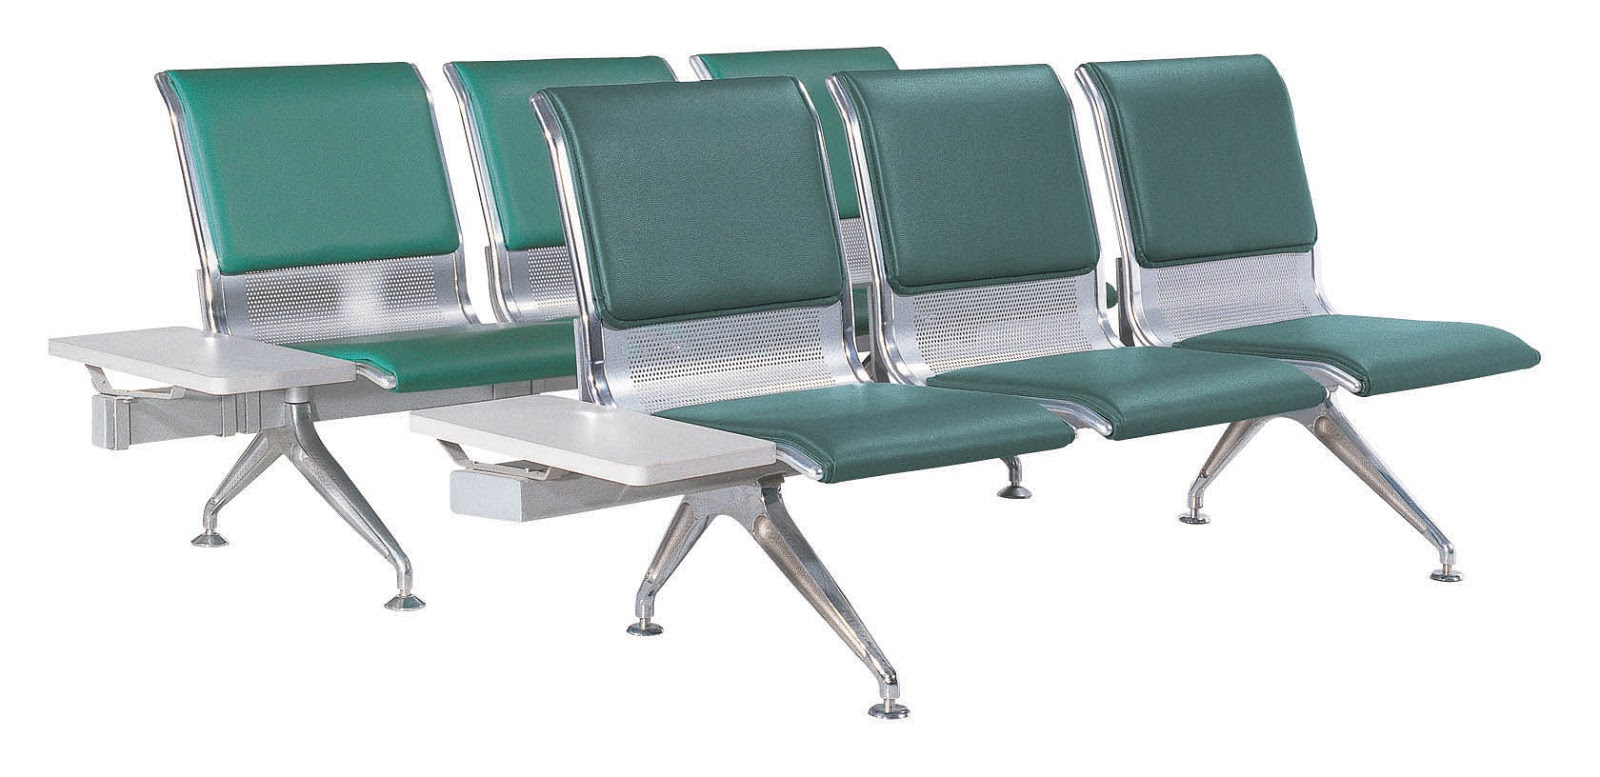 steel airport chair mat for carpet hospital bank station waiting room